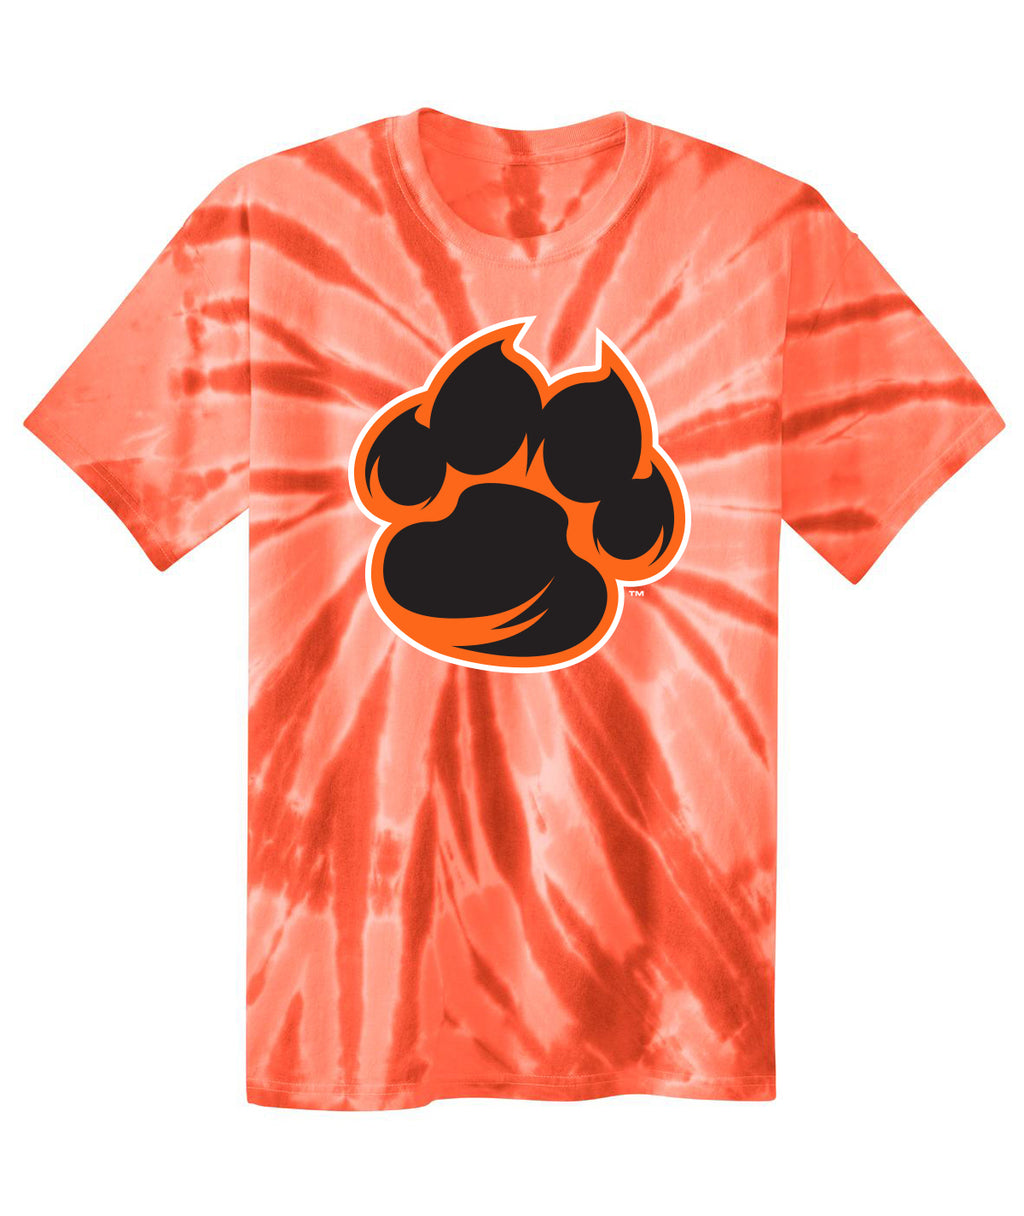 Tiger Paw Youth Tie-Dye Tee